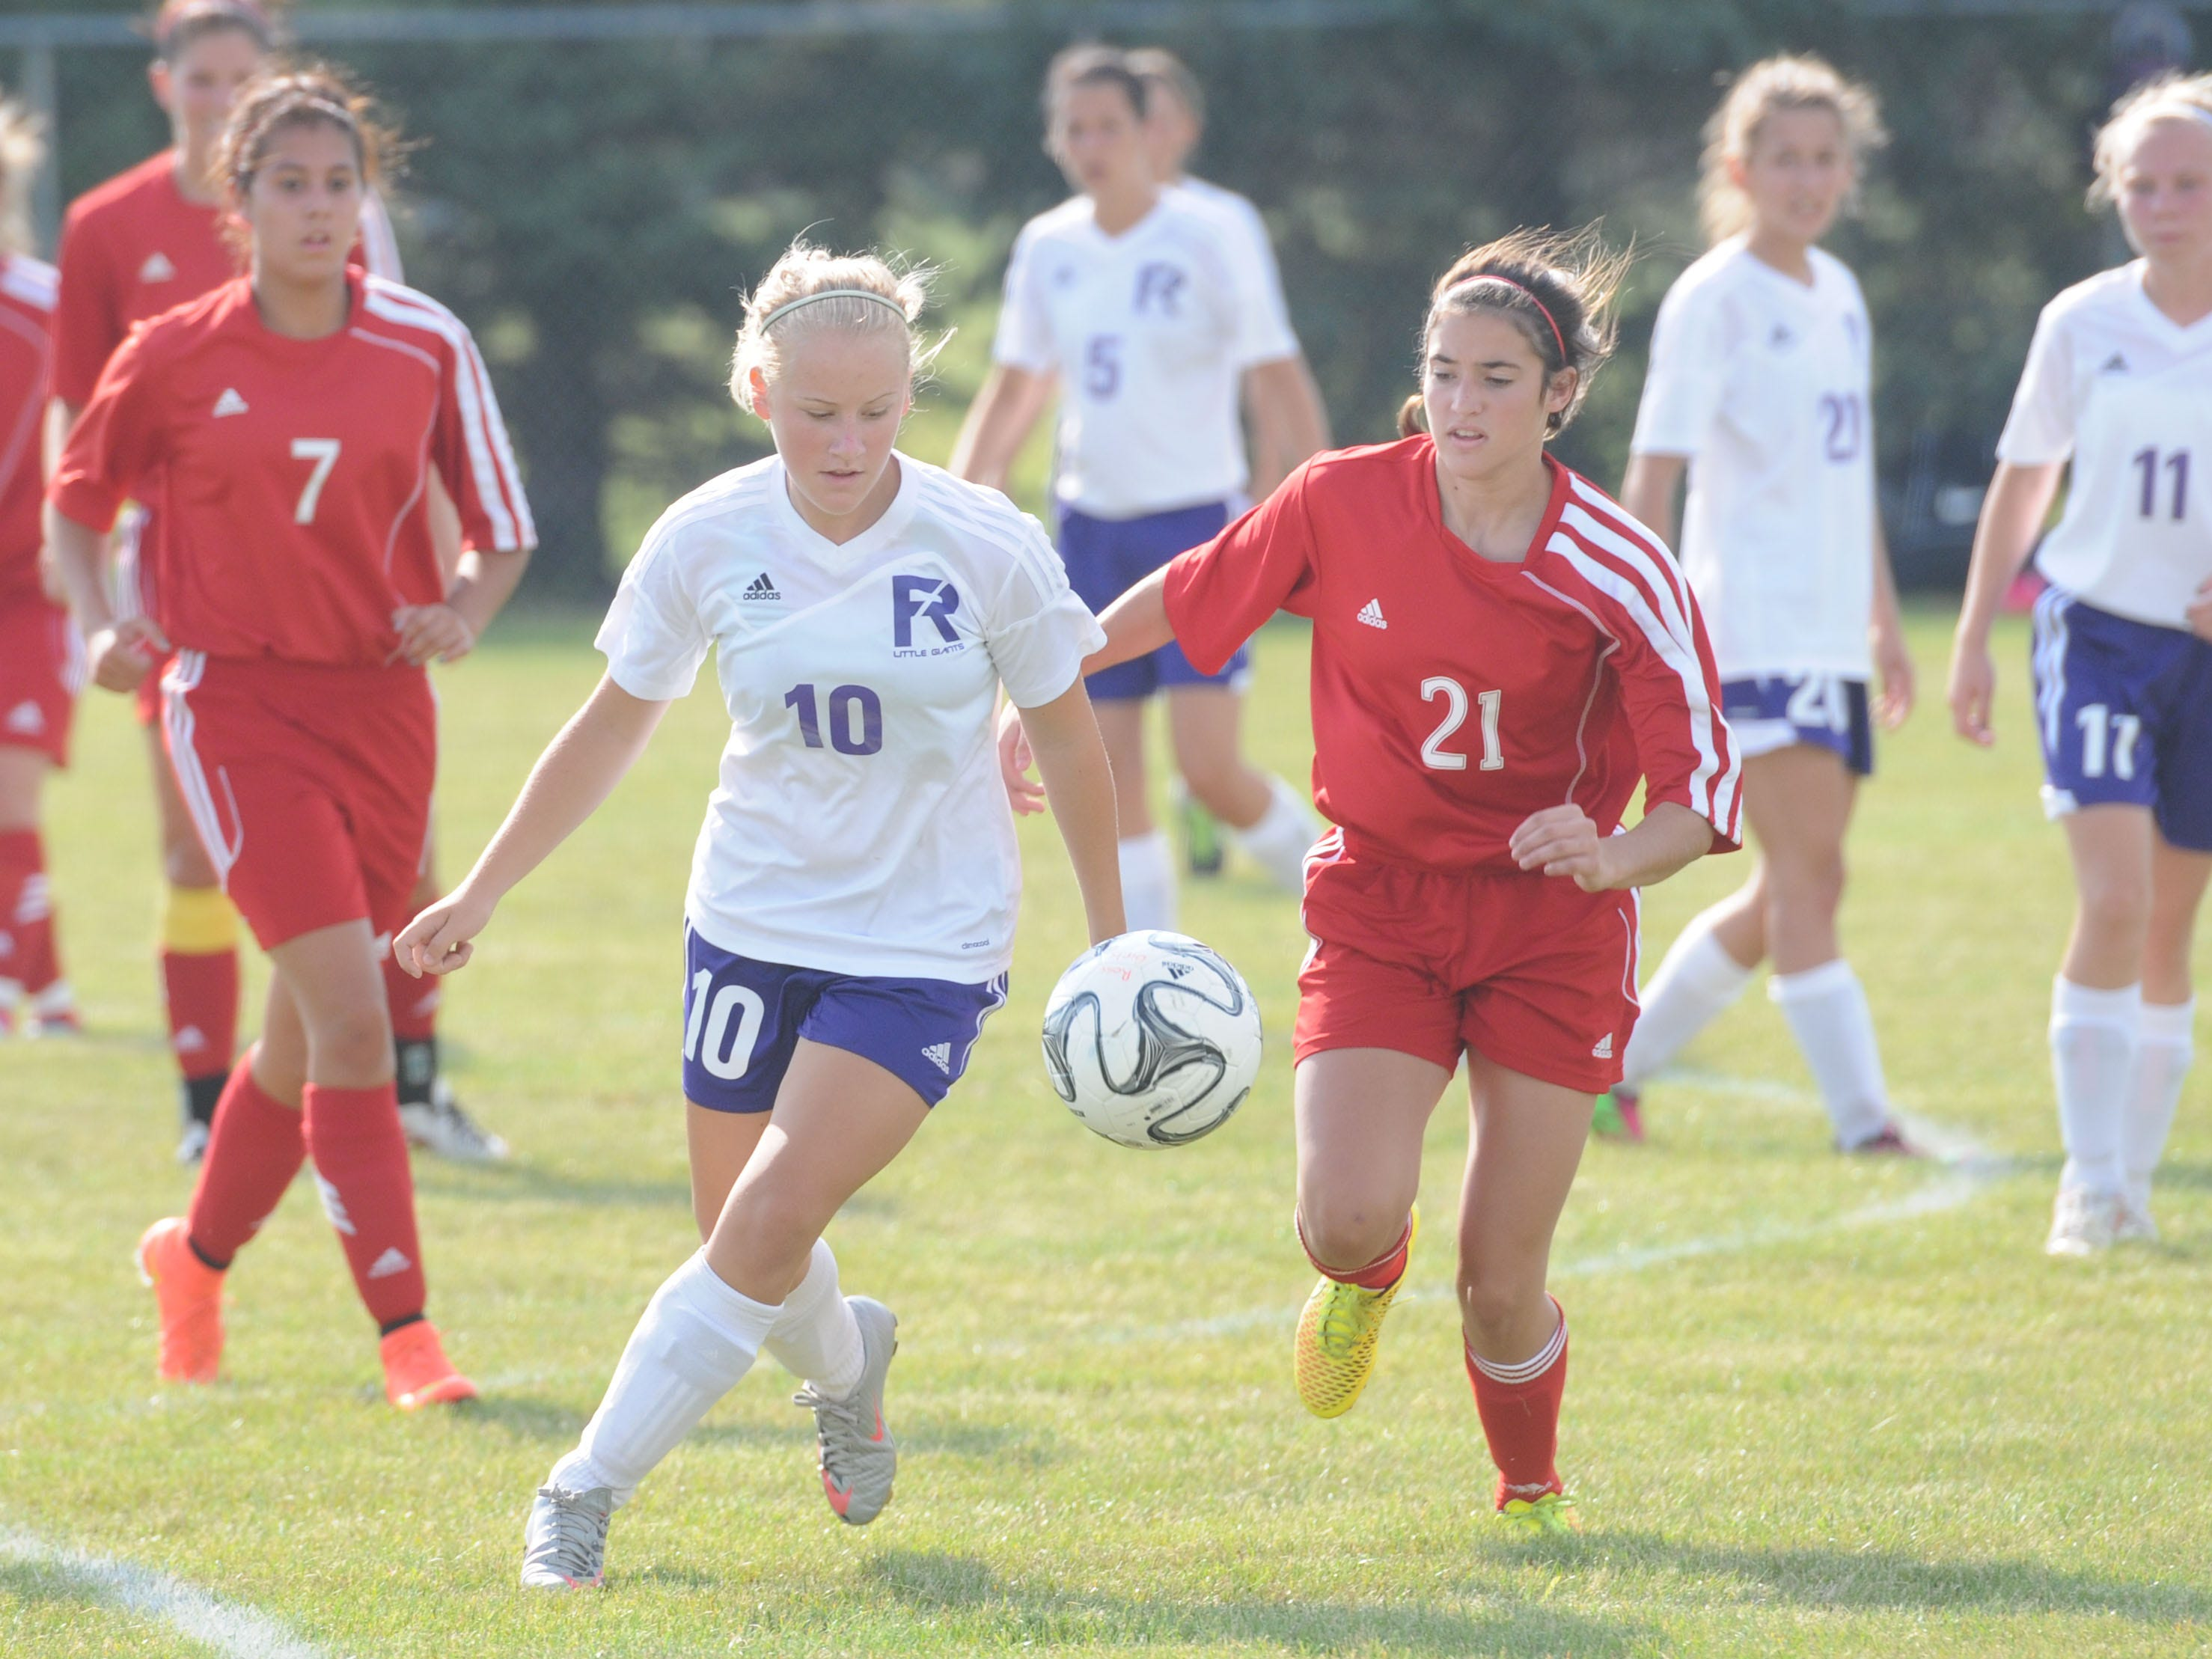 Fremont Ross' Meagan Lilley and Port Clinton's Abbey Weldon fight for possession of the ball during Wednesday's game at Fremont Ross.